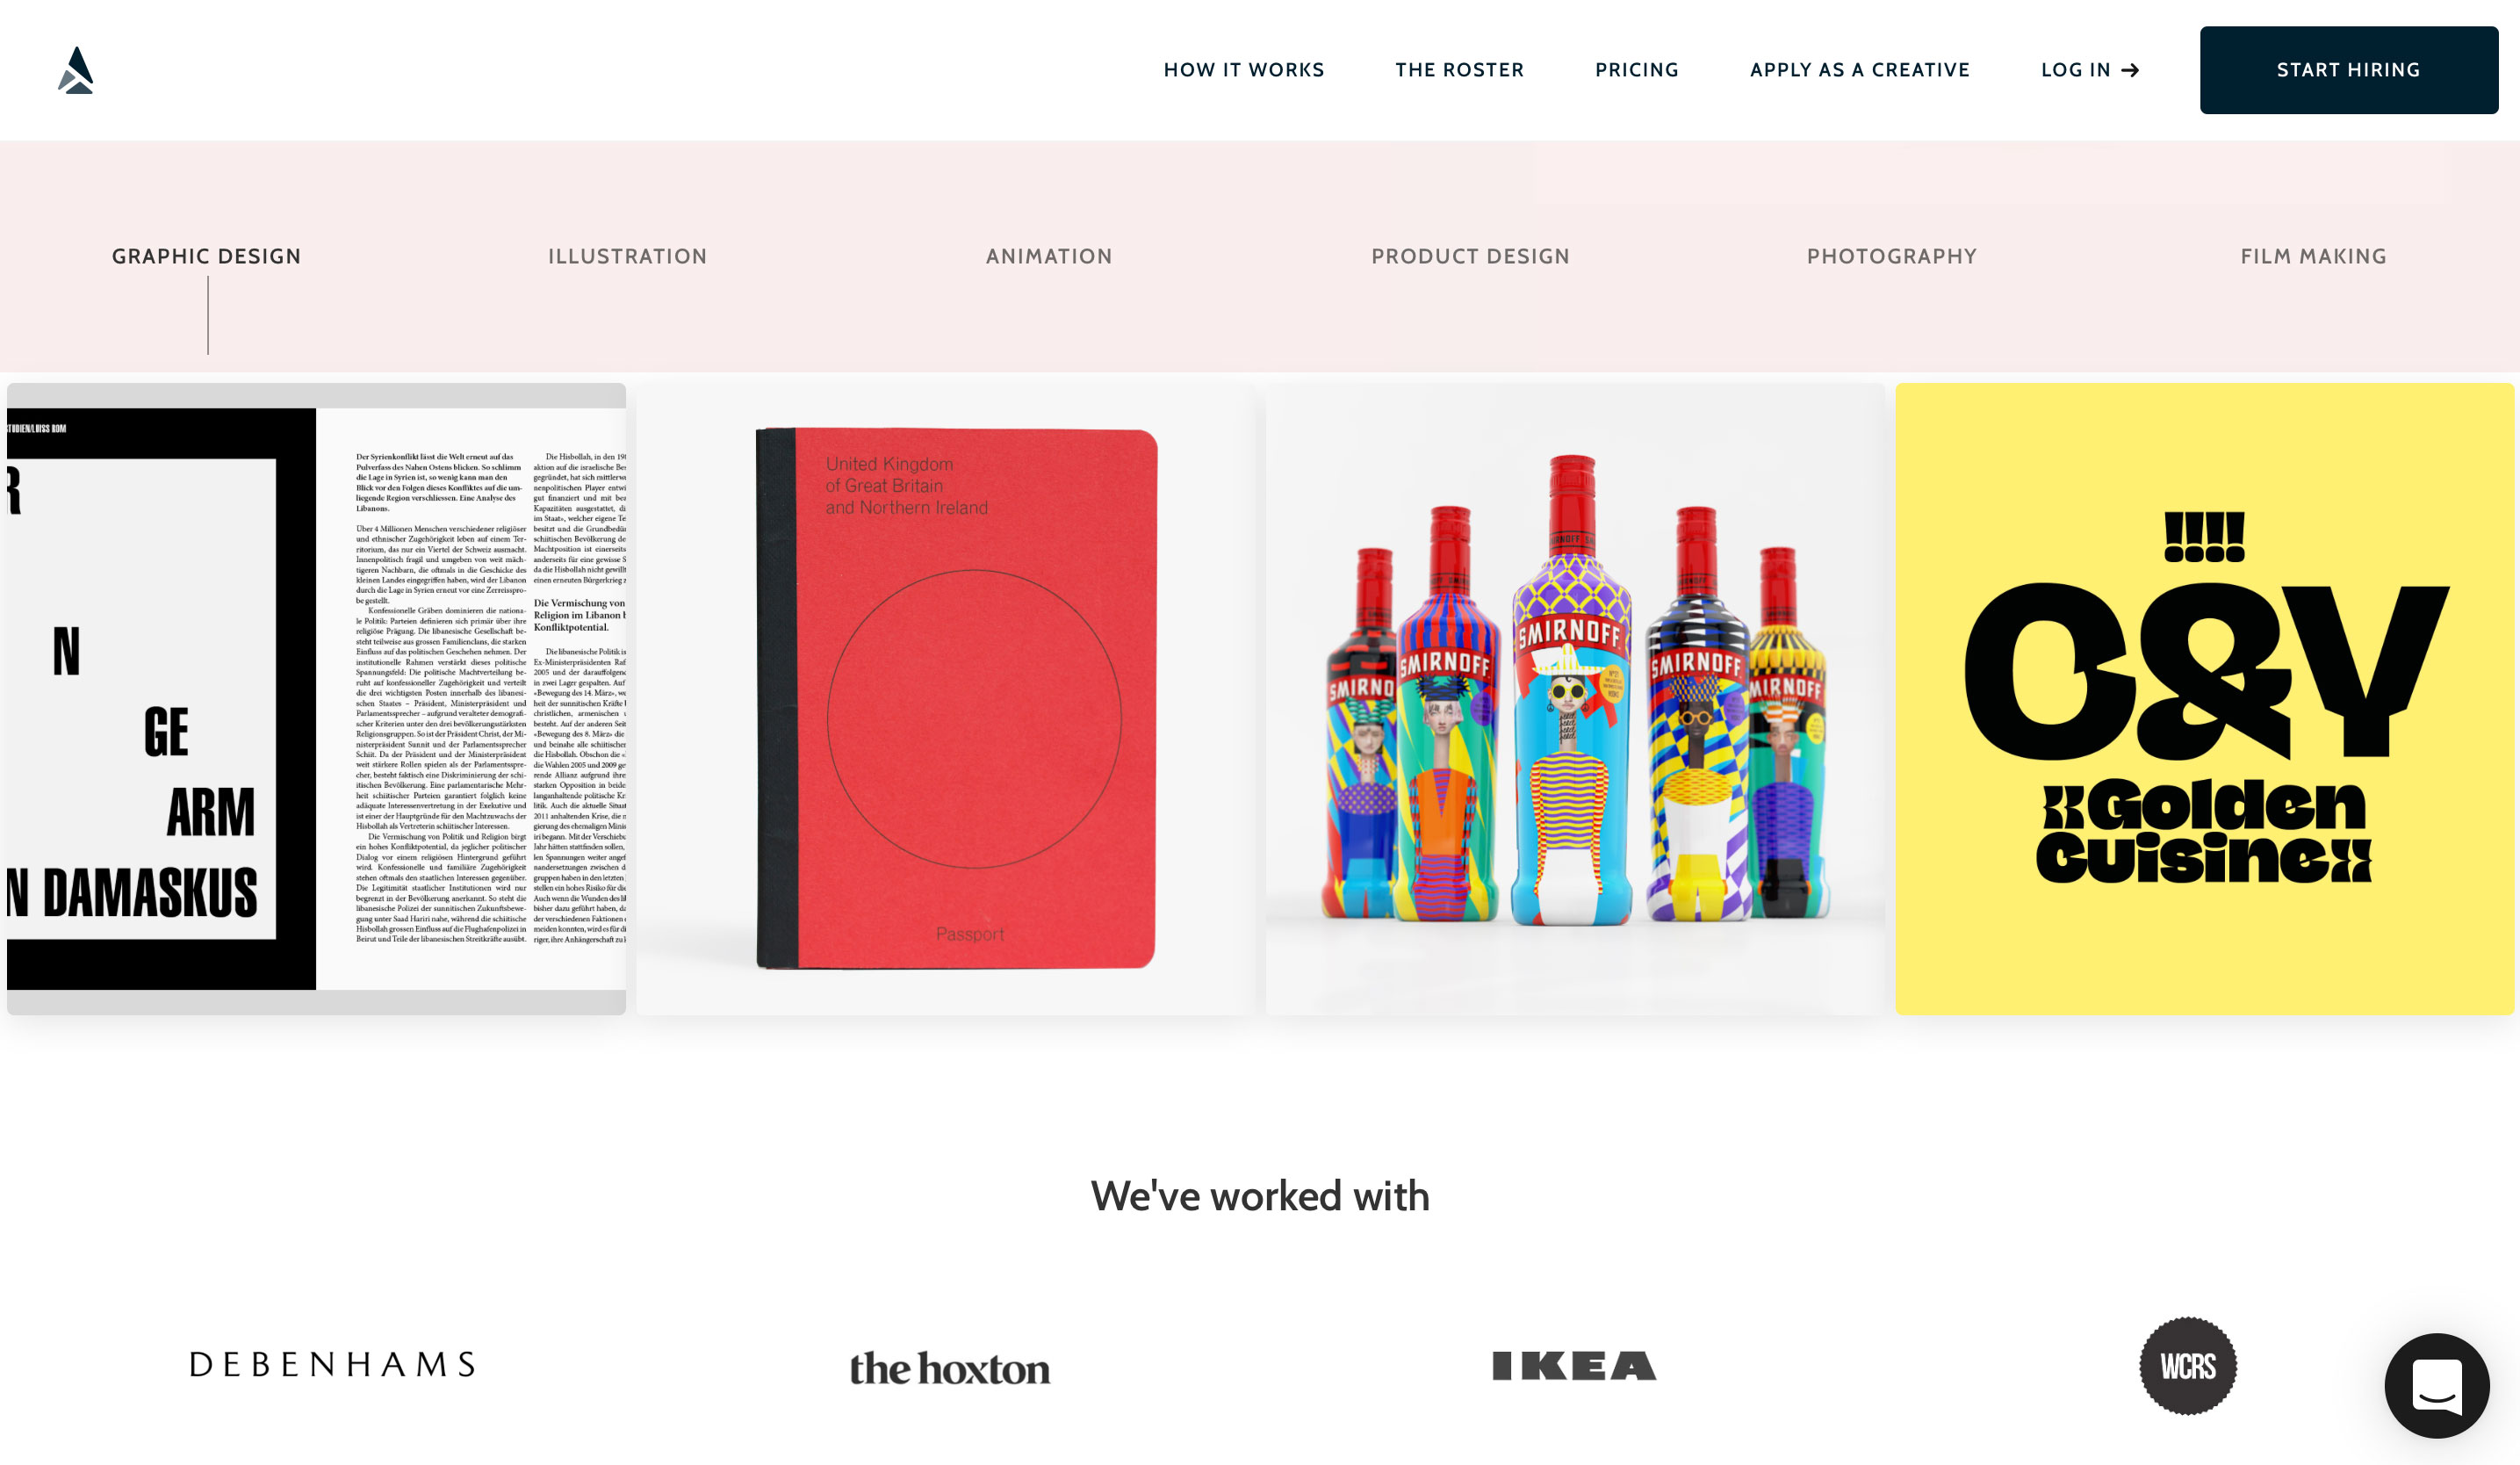 Easle expands to help more creative freelancers get hired